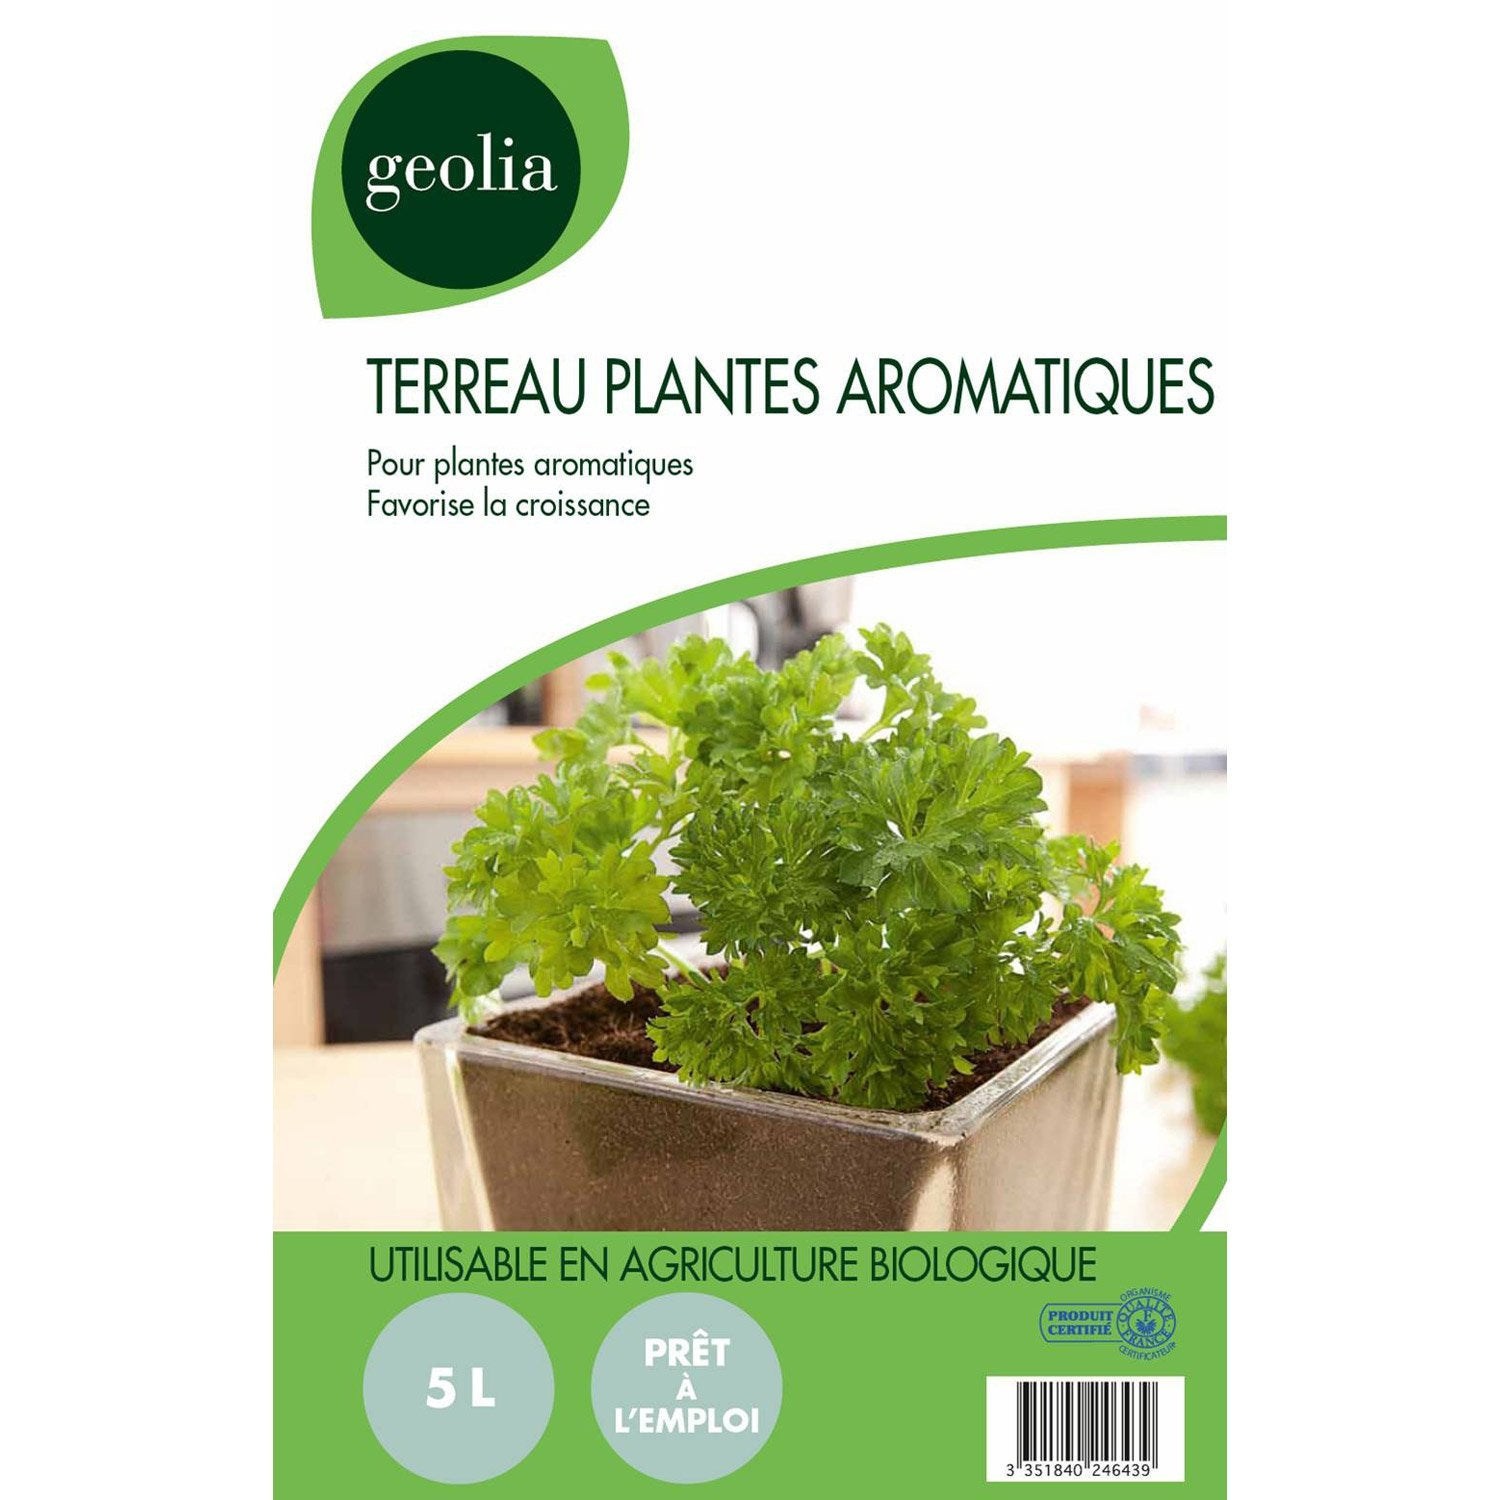 terreau plantes aromatiques geolia 5 l leroy merlin. Black Bedroom Furniture Sets. Home Design Ideas